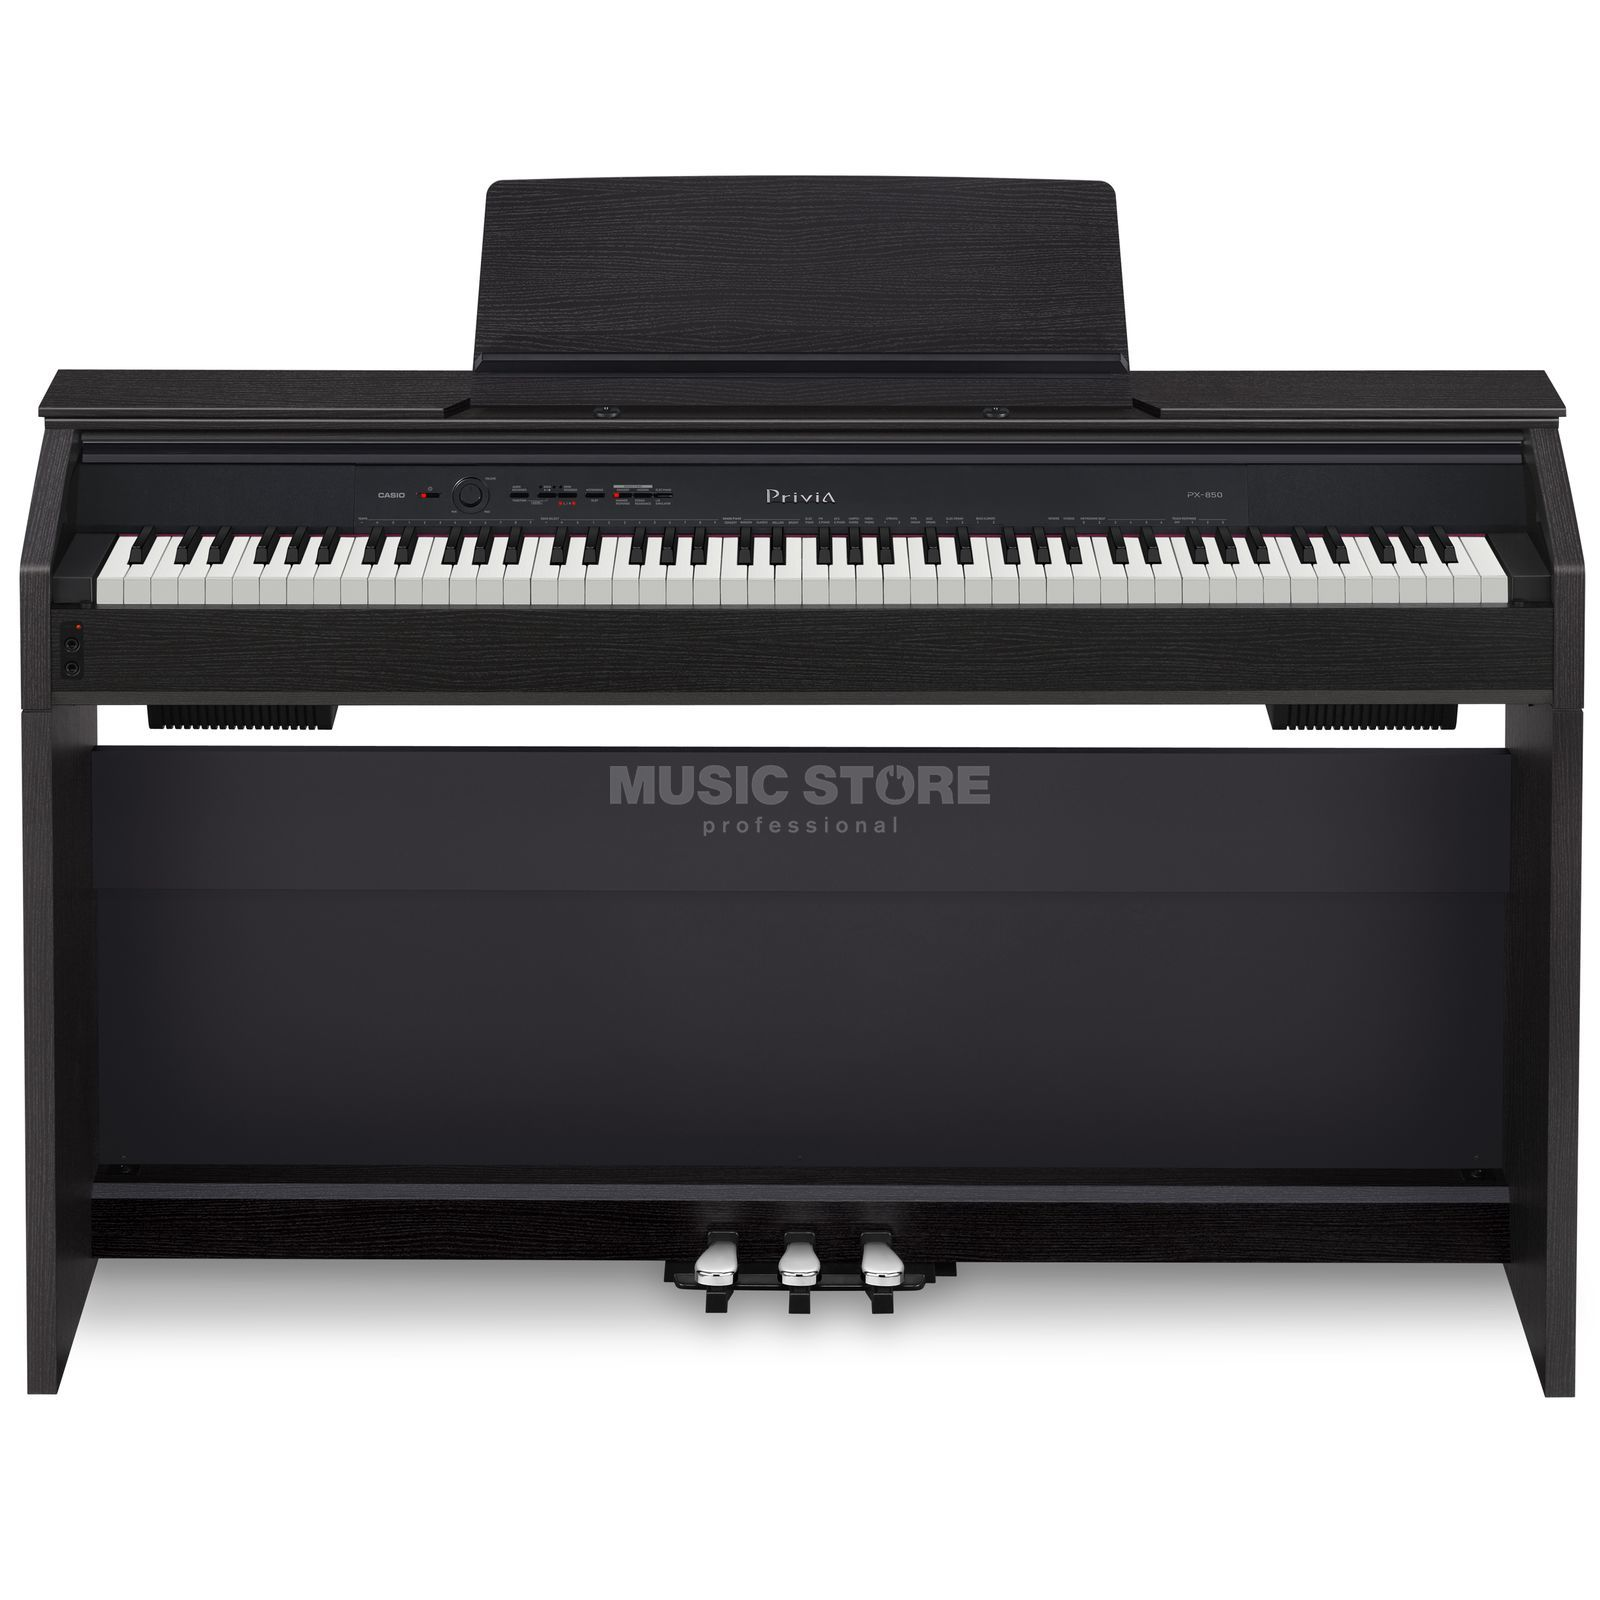 Casio Privia PX-850 BK Digital Piano black Product Image